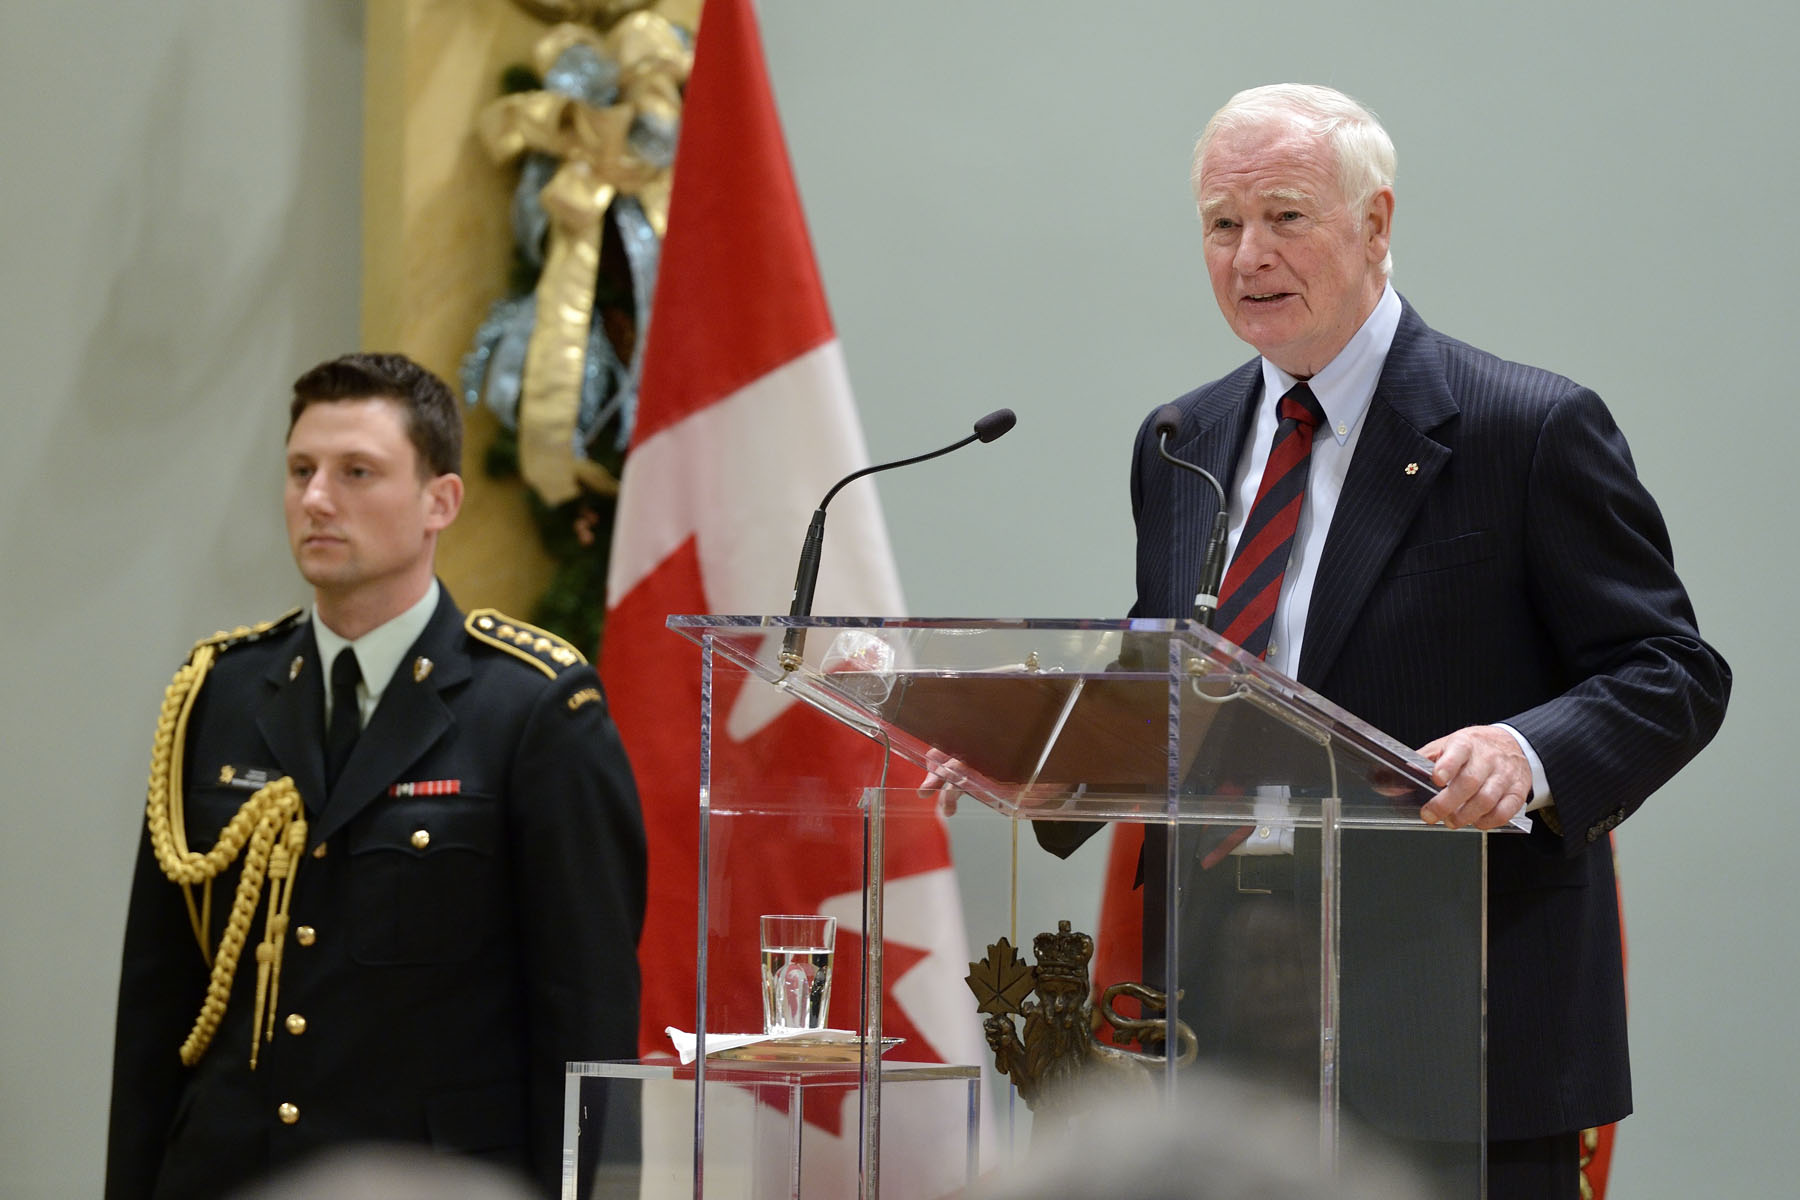 """You will take on the responsibilities of a citizen, and help define what it means to be a Canadian.You will use the wealth of your knowledge, culture and experiences to make this a better country,"" said His Excellency."